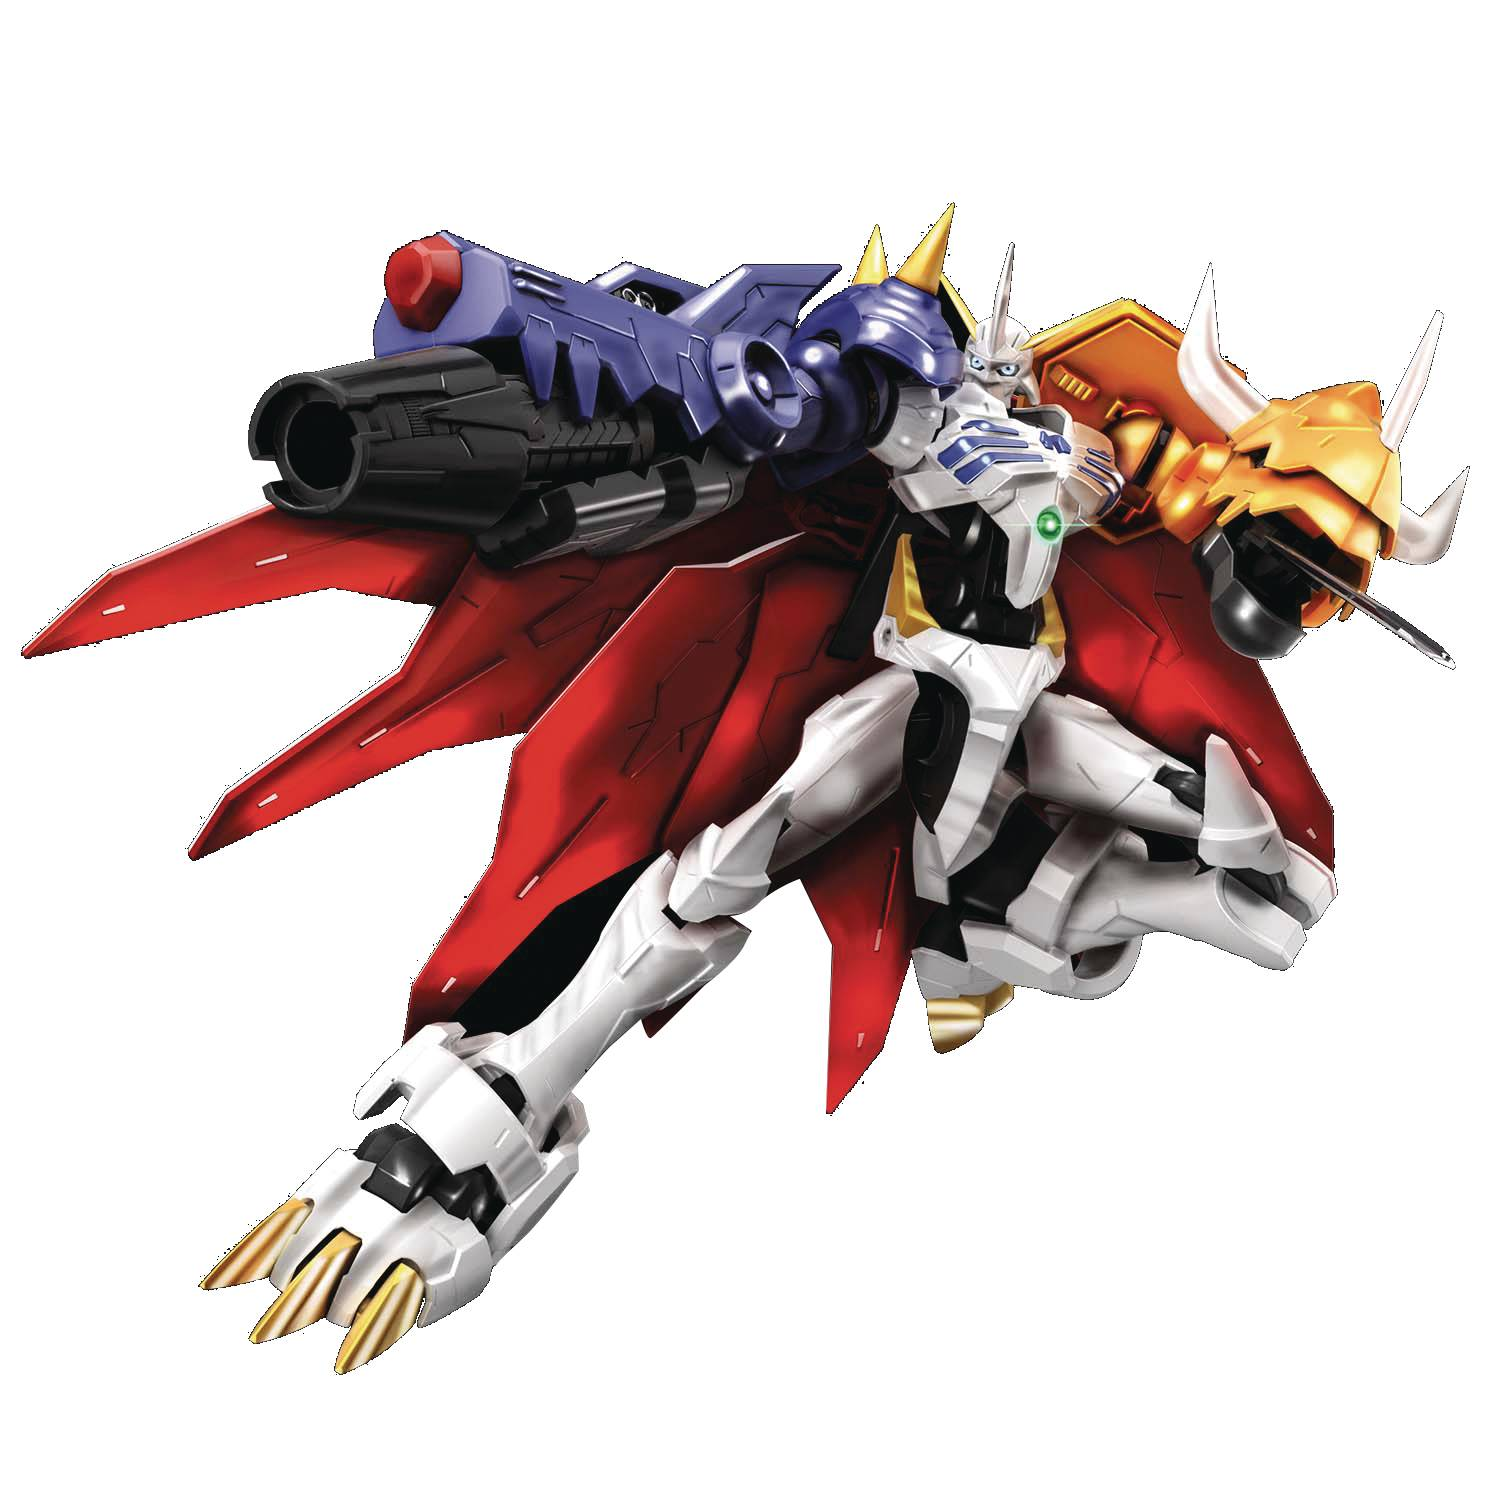 DIGIMON AMPLIFIED OMEGAMON FIG-RISE STD MDL KIT